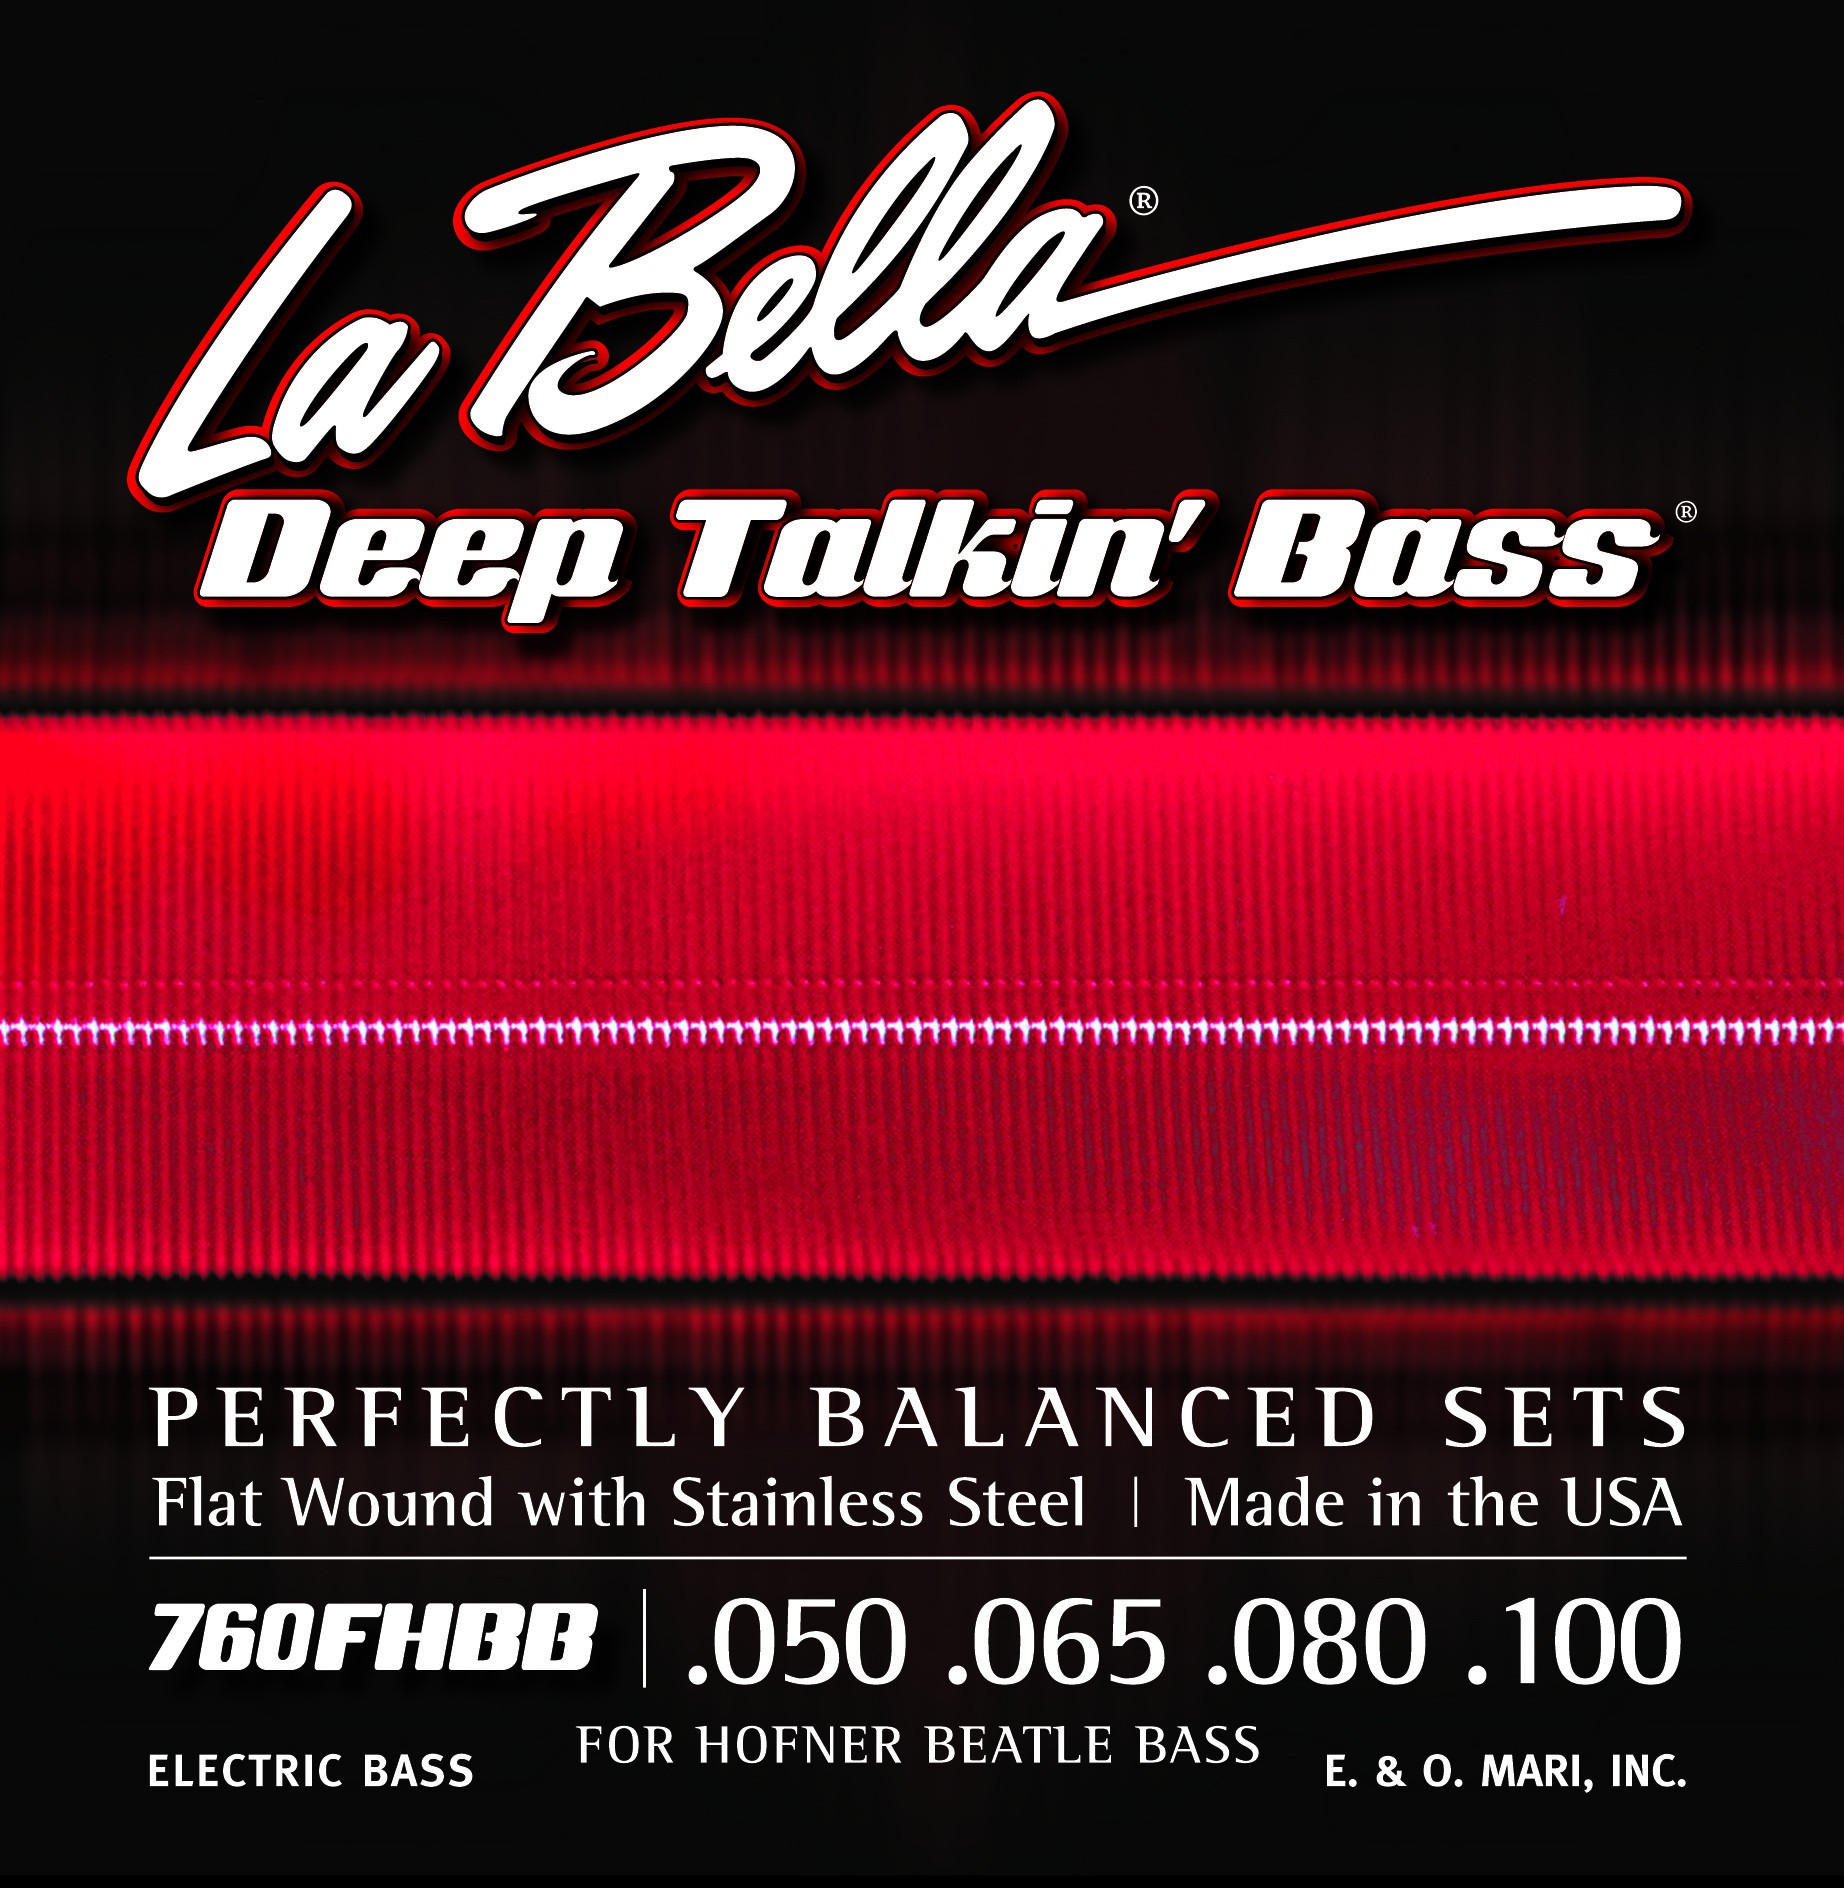 "La Bella Bass Guitar Strings - Hofner ""Beatle"" Deep Talkin' Bass Series"